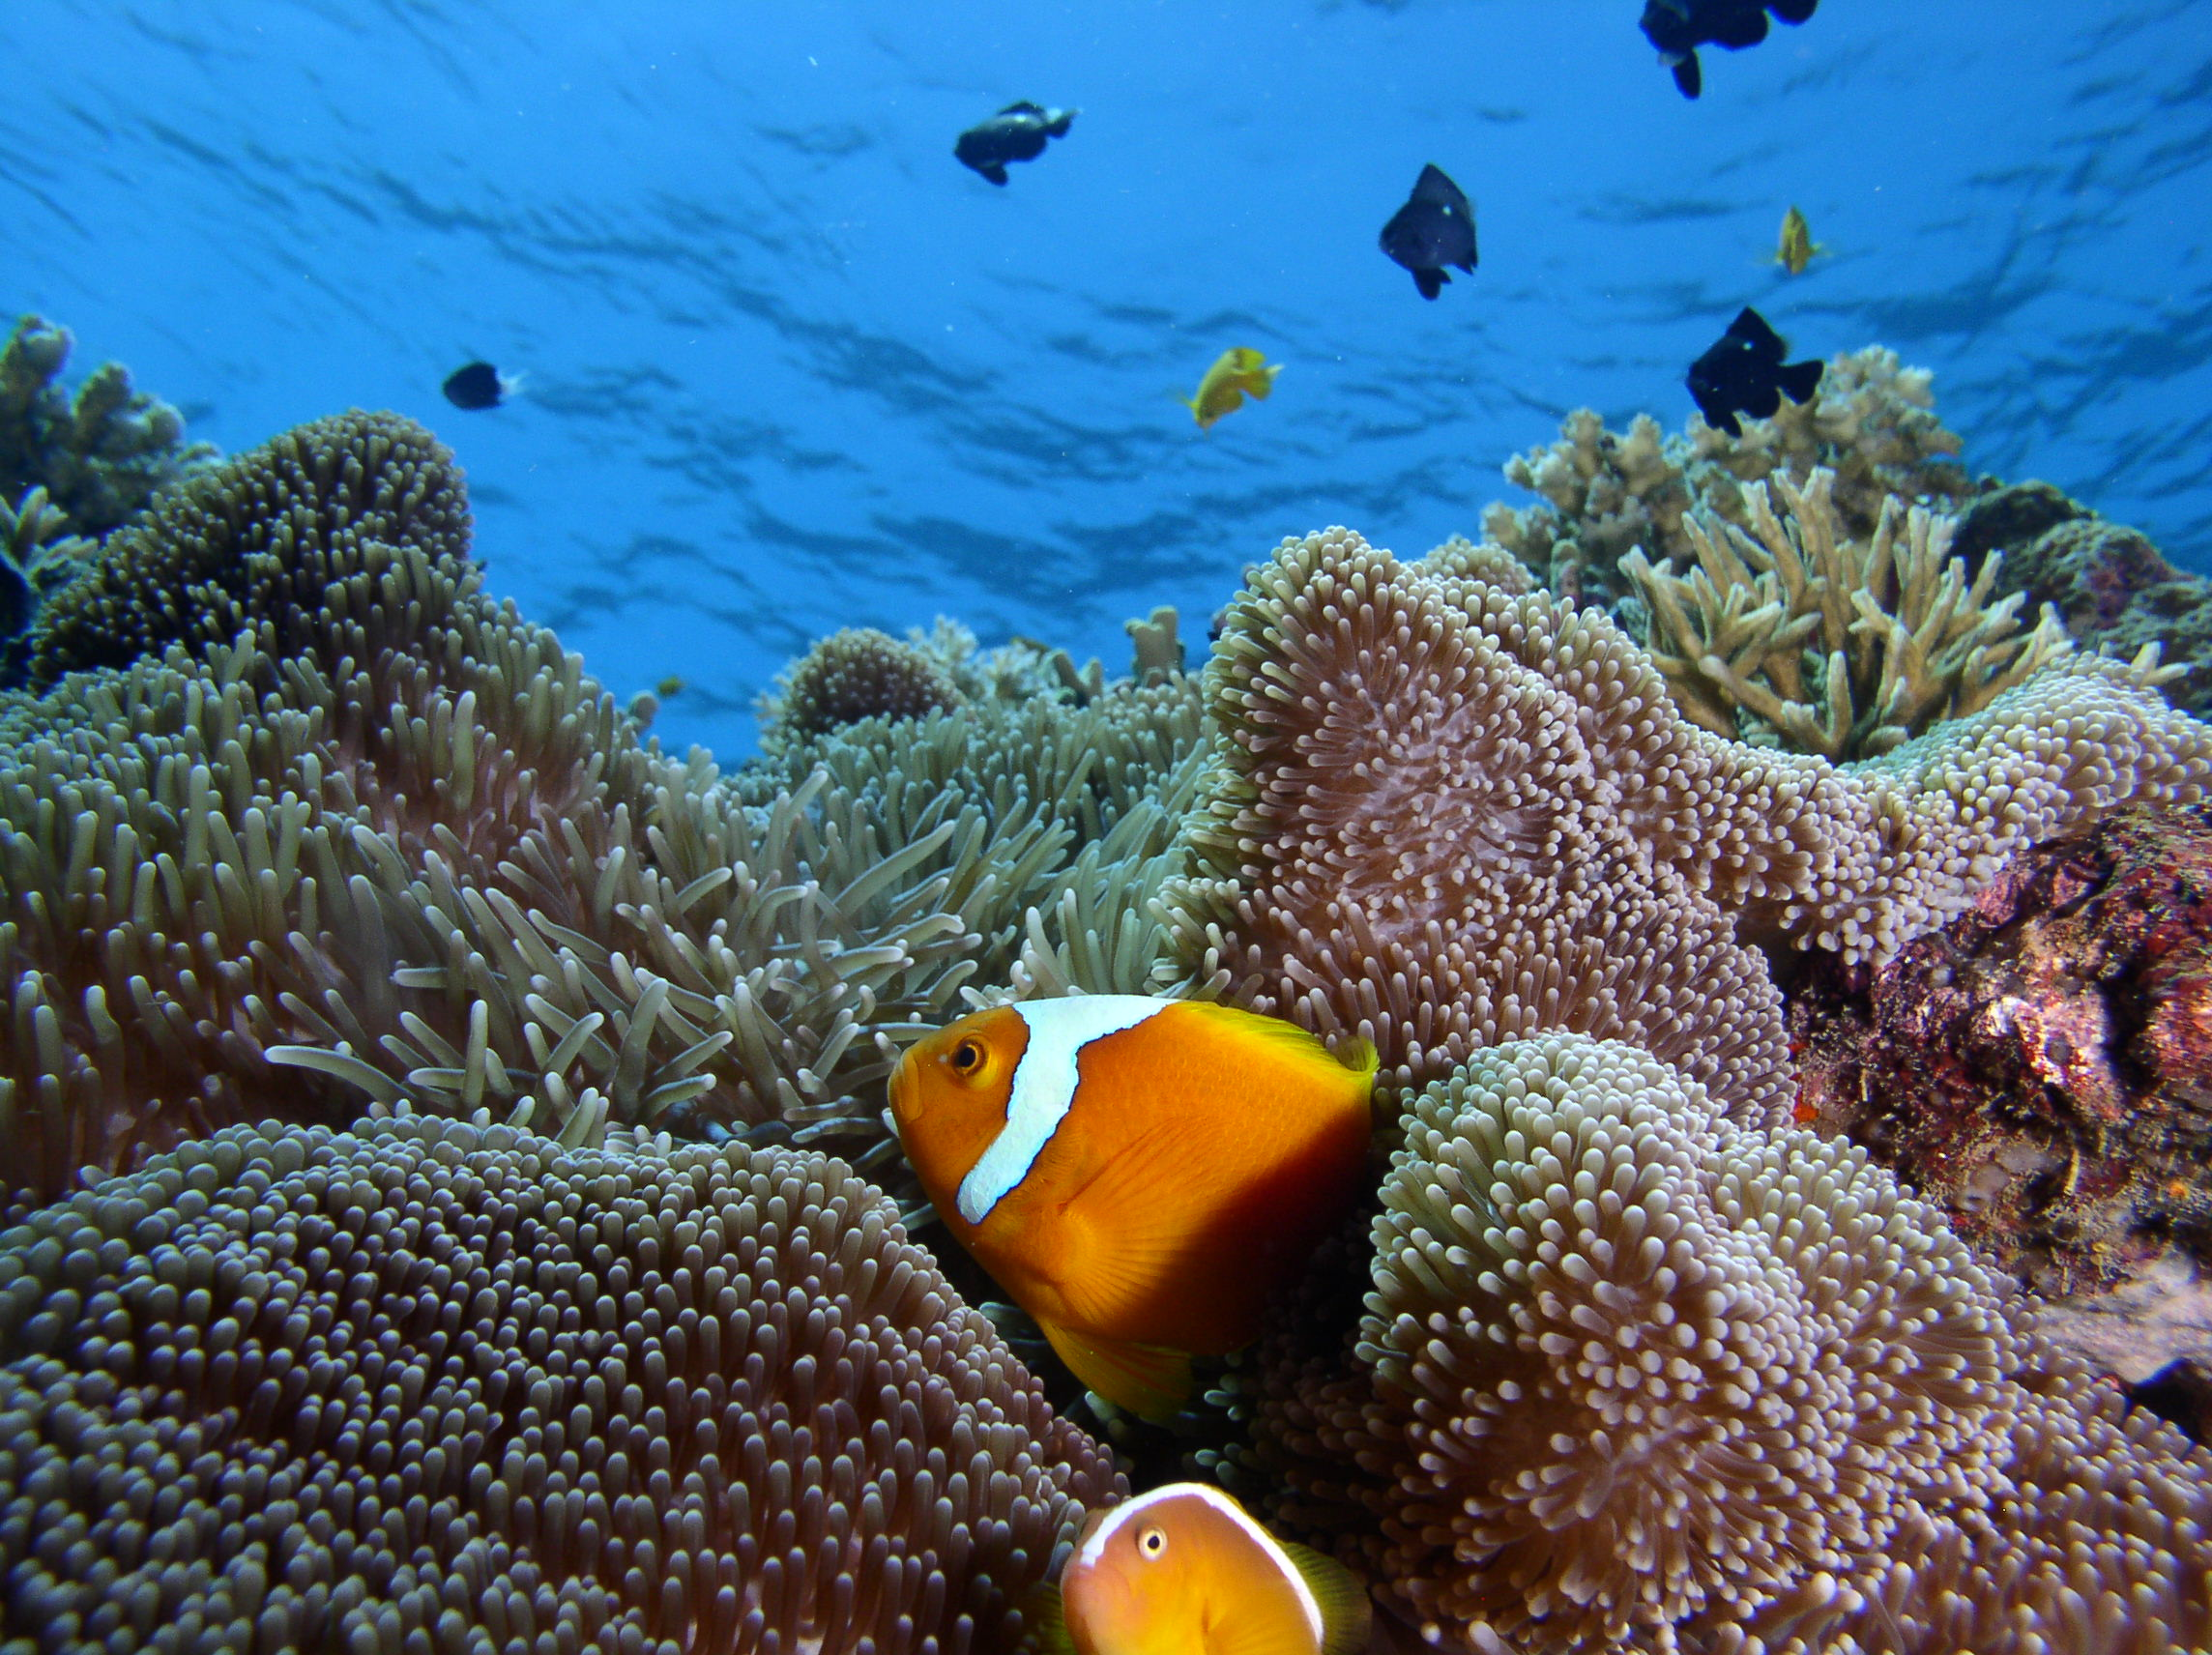 There are nine varieties of anemonefish on this reef - here are two of them.  Do you know what they are?